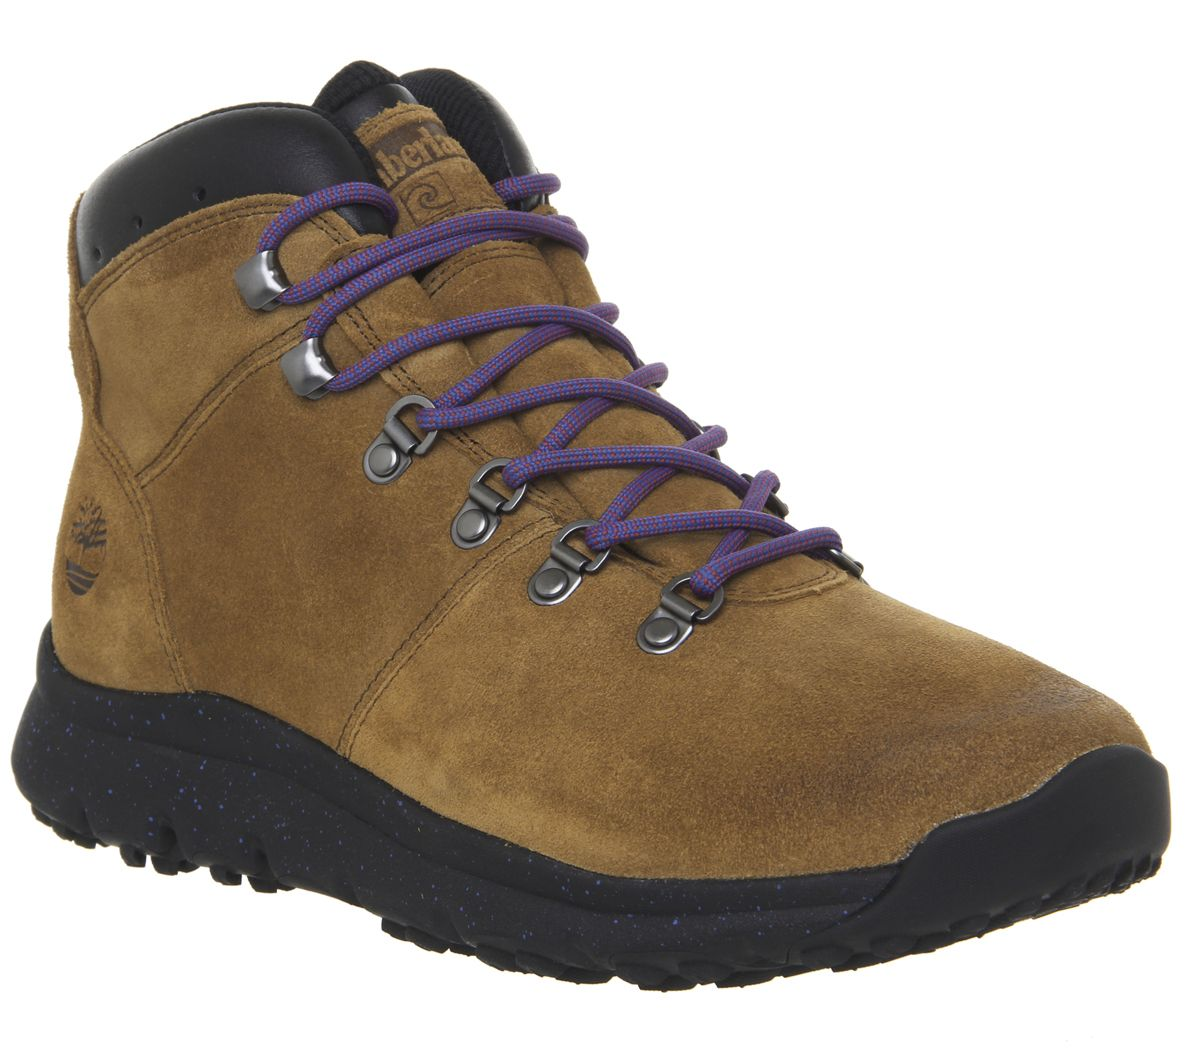 f0625f9eb65 World Hiker Mid Boots